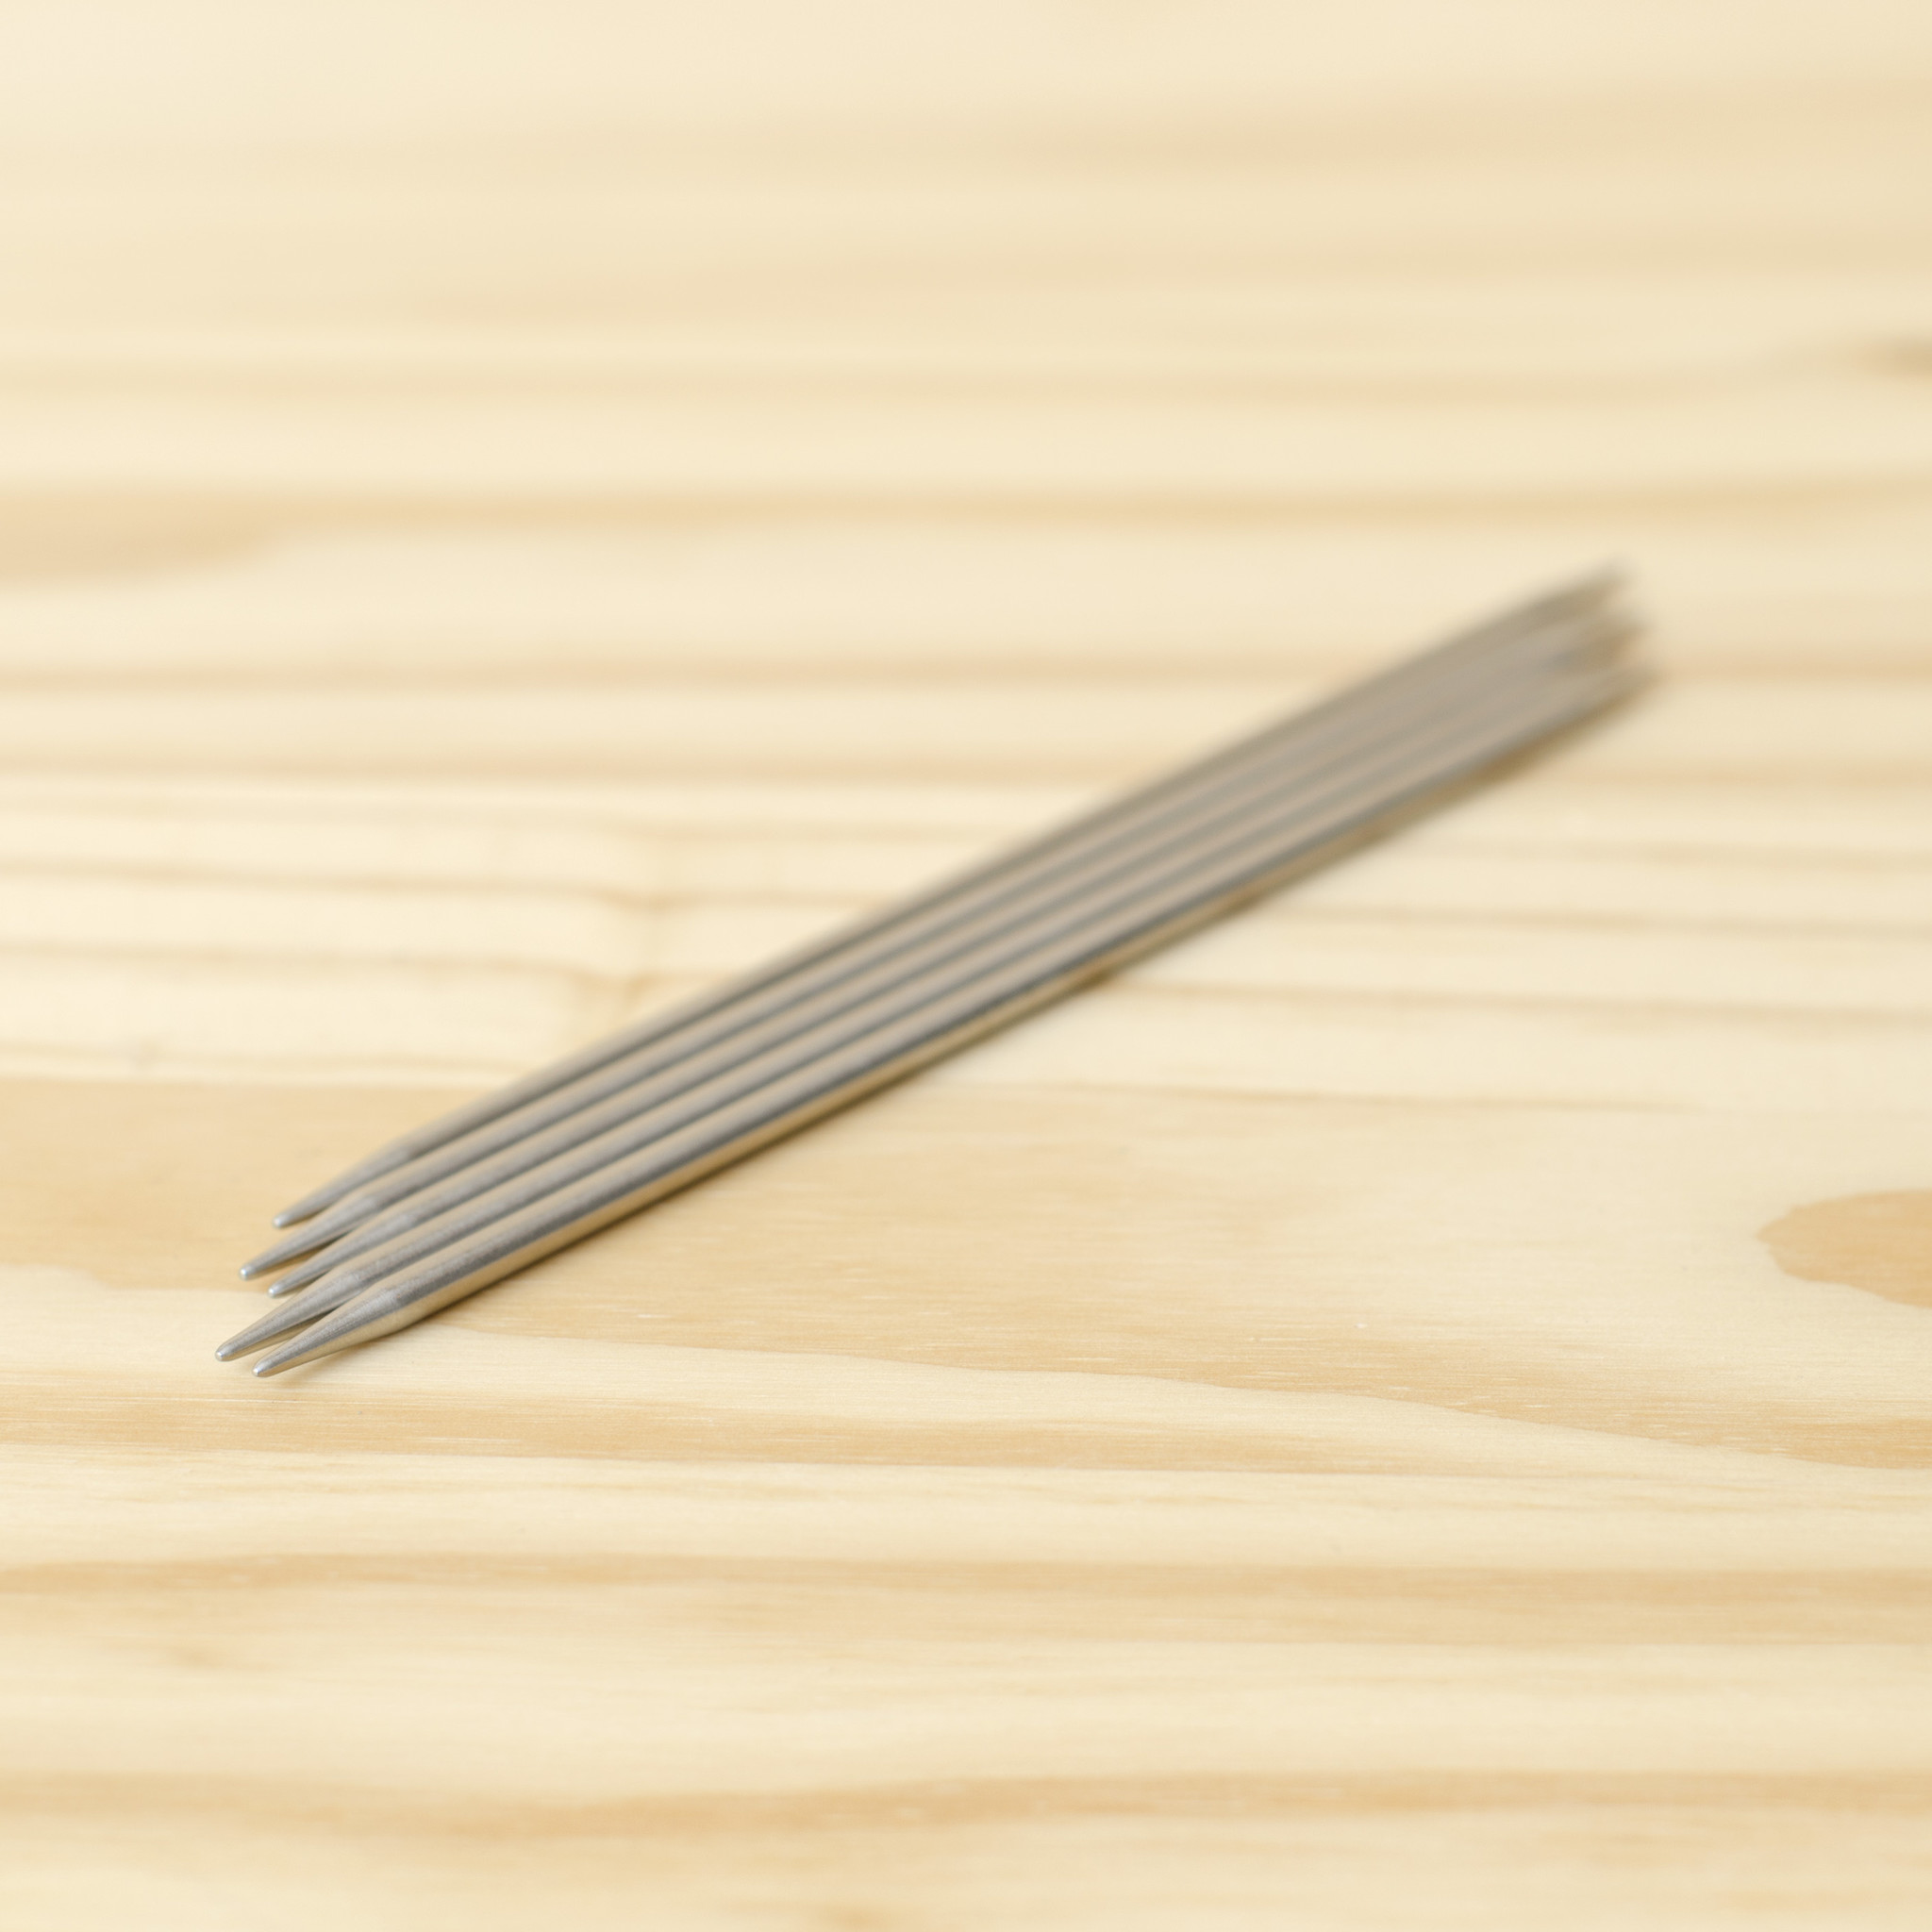 """ChiaoGoo Stainless Steel Double Point Needles 6"""" : US 4/3.5mm"""